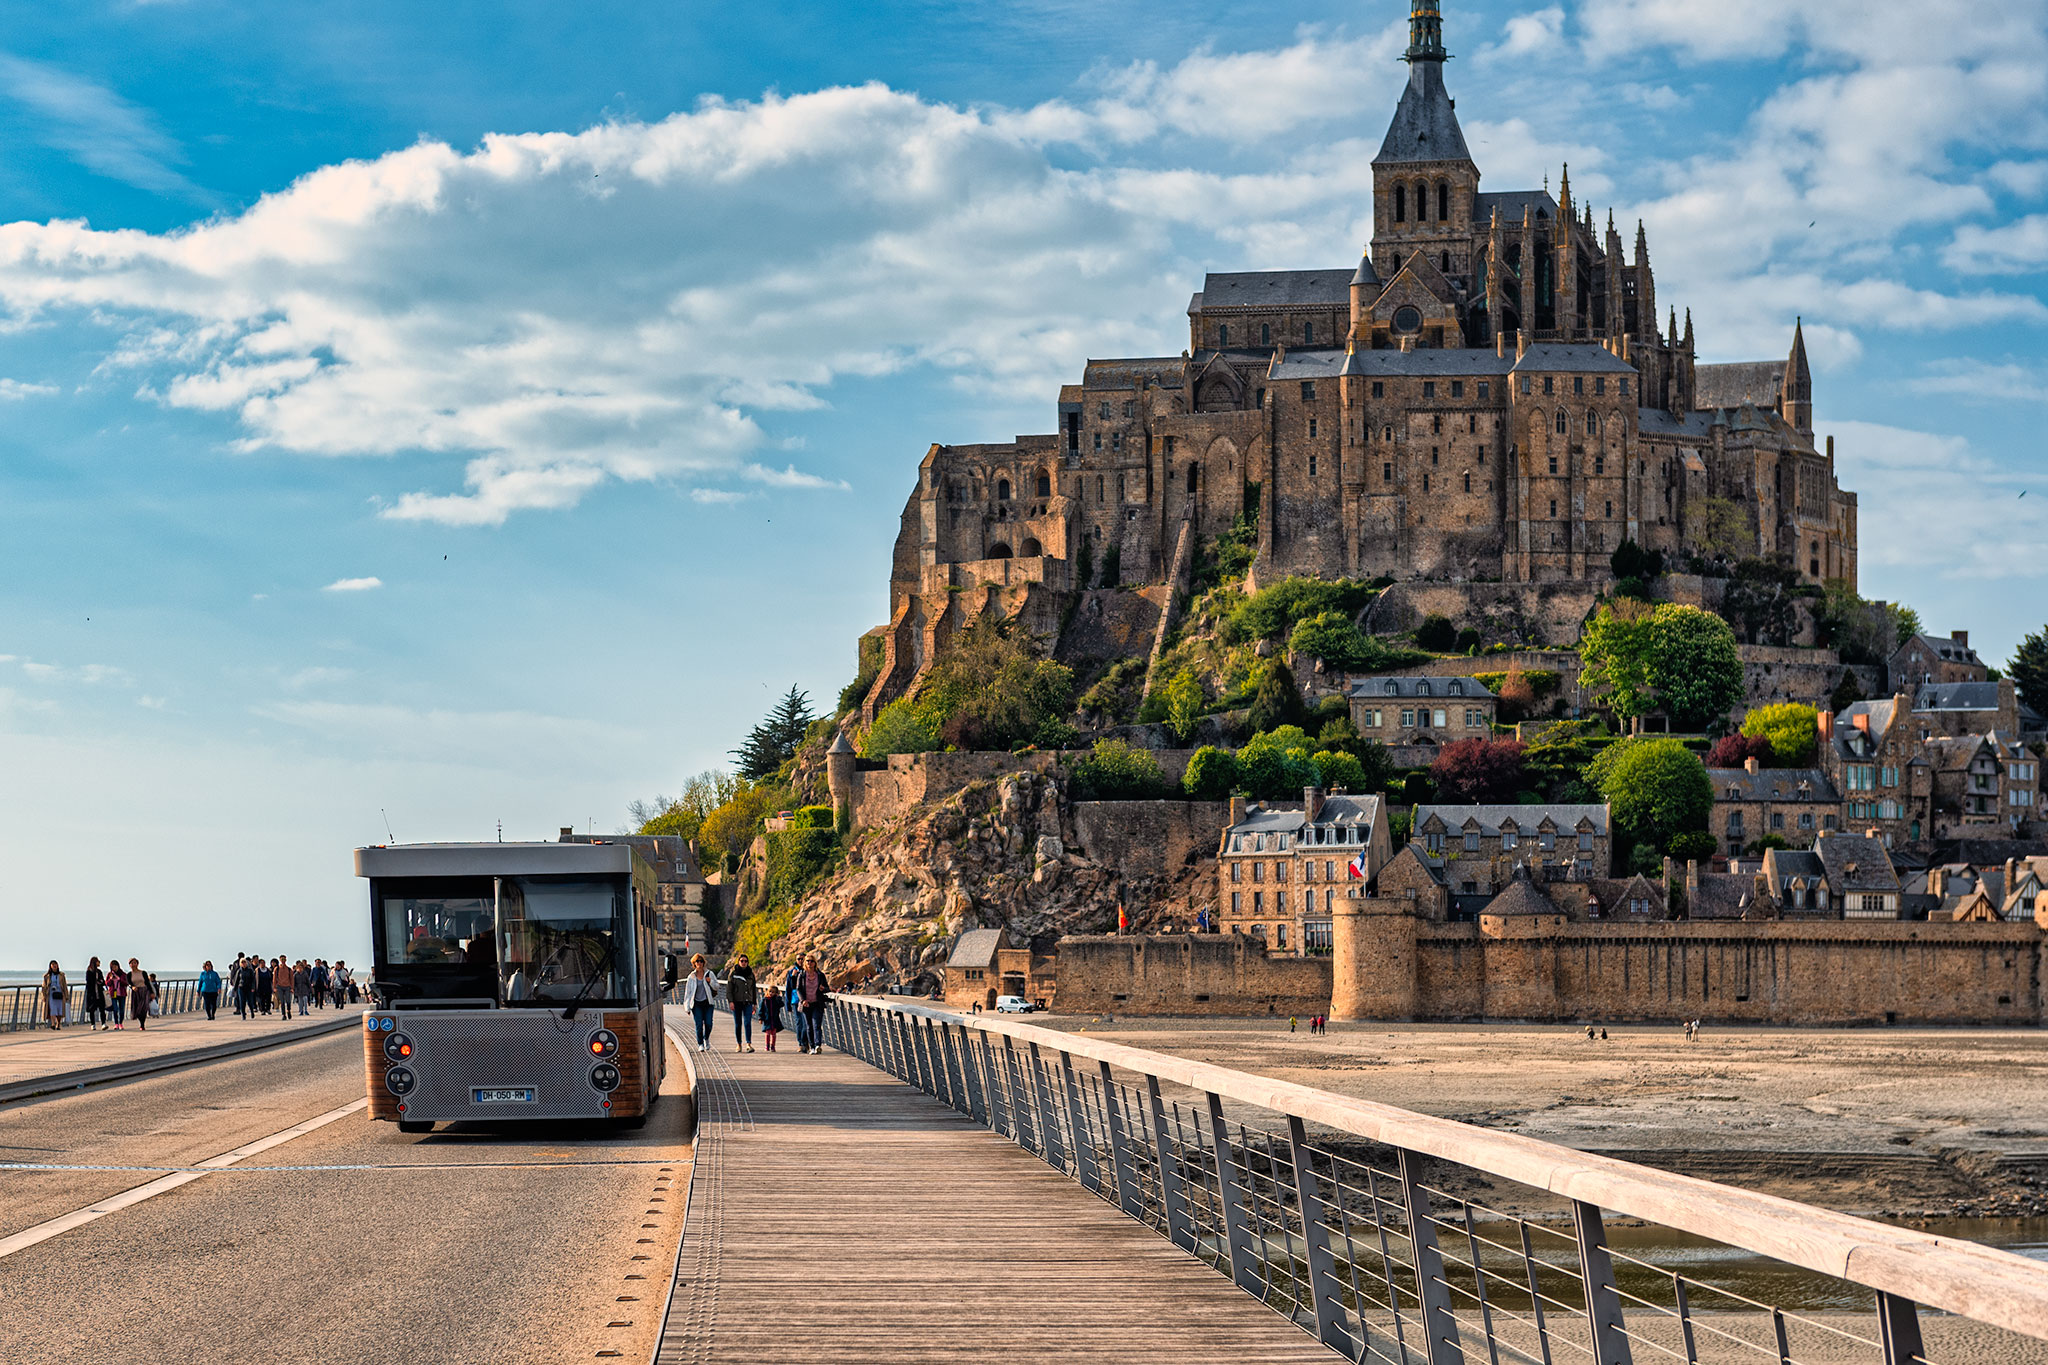 Complimentary Shuttle Bus (Navette) at Mont Saint Michel